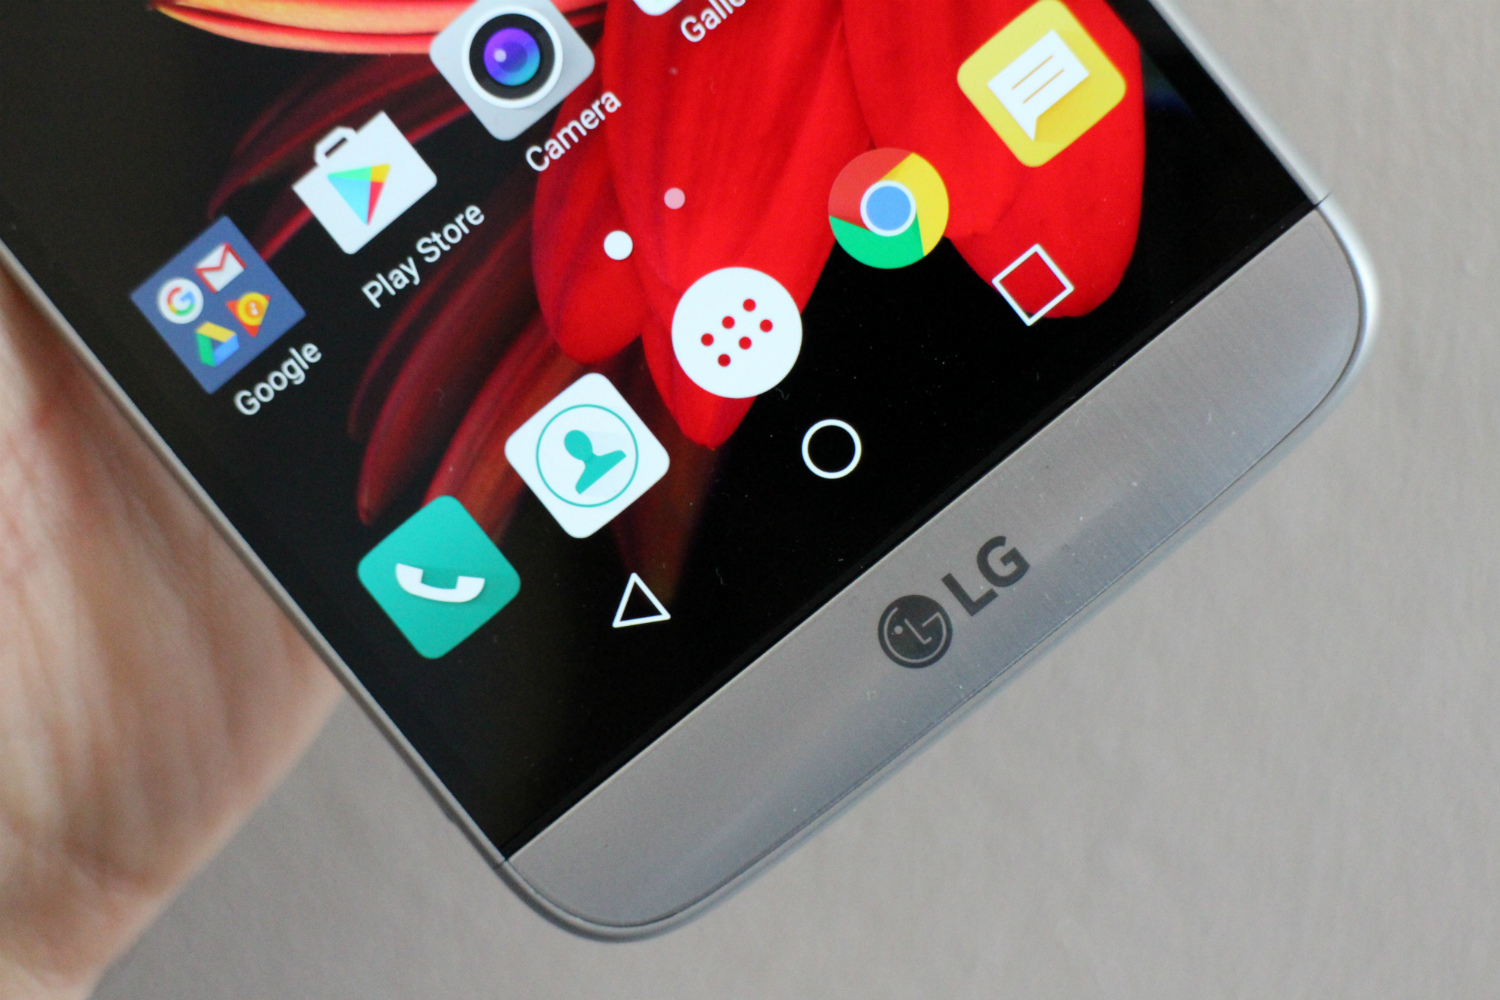 LG to reveal six smartphones at CES